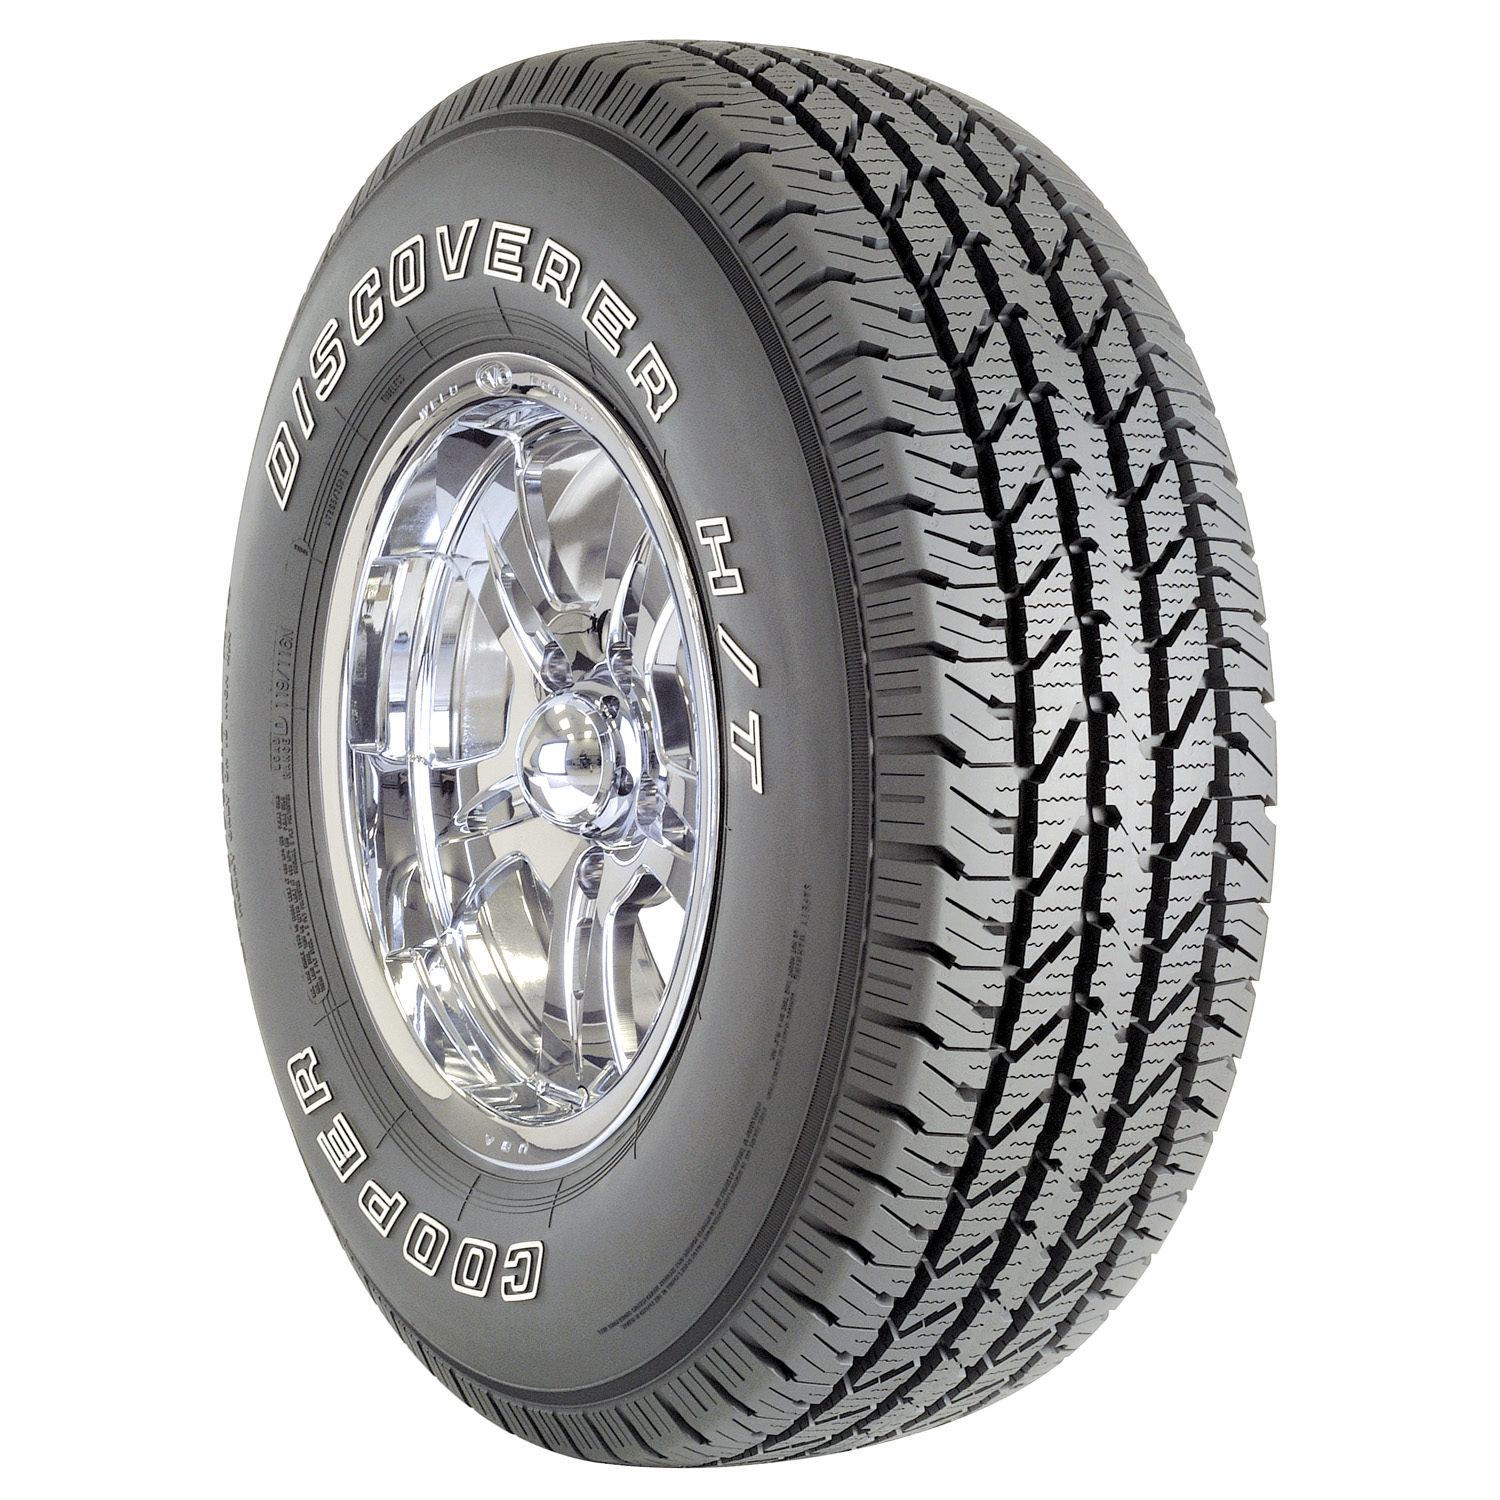 Cooper Discoverer HT - LT265/70R17E 121R OWL - All Season Tire 265-70-17